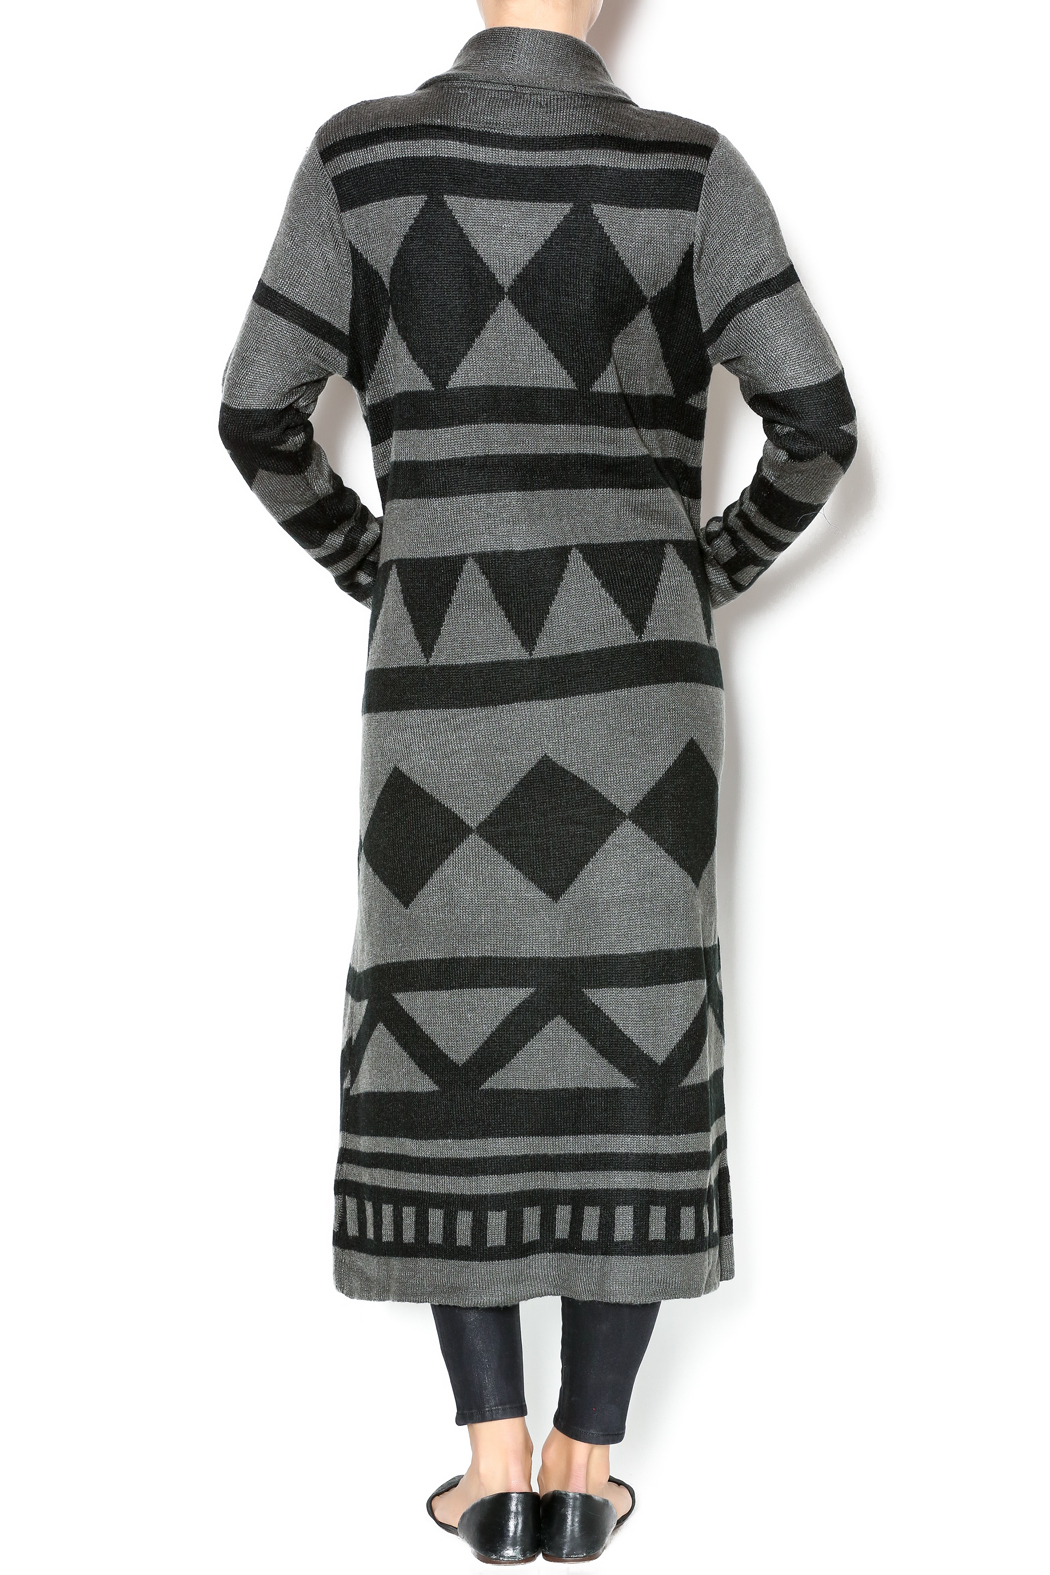 0b471aee074 Cecico Geometric Long Cardigan from Philadelphia by El Quetzal ...